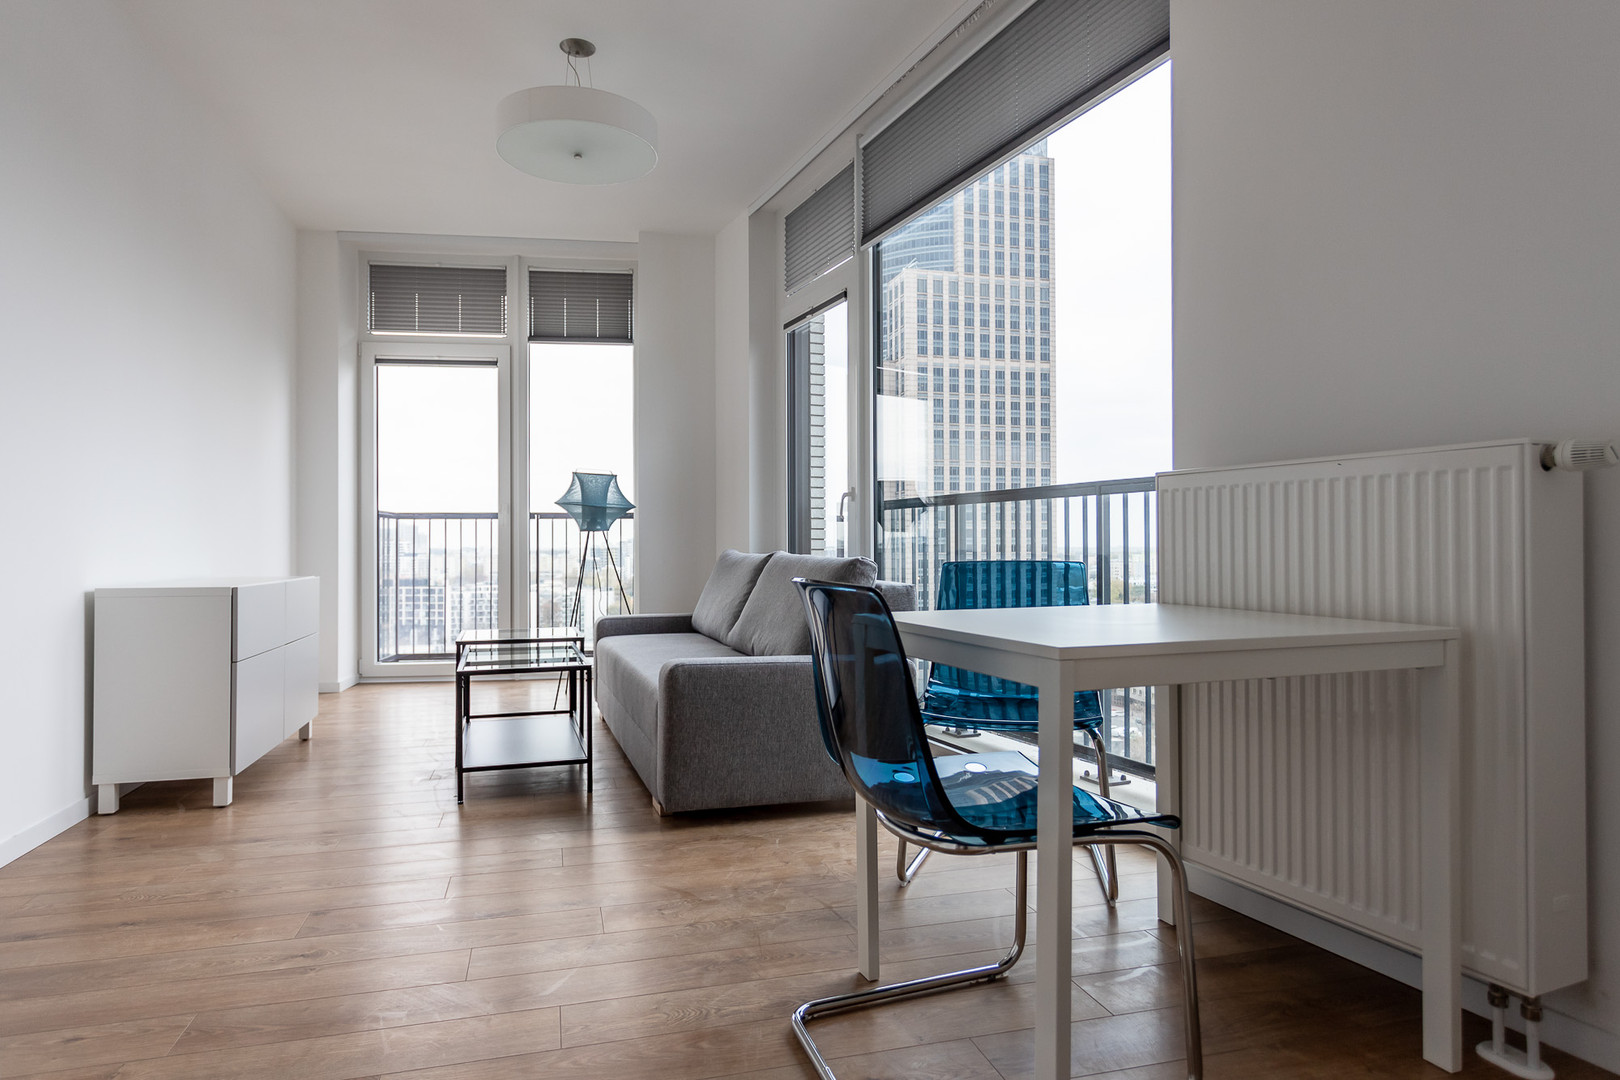 Warszawa Browary for rent with view12.jp